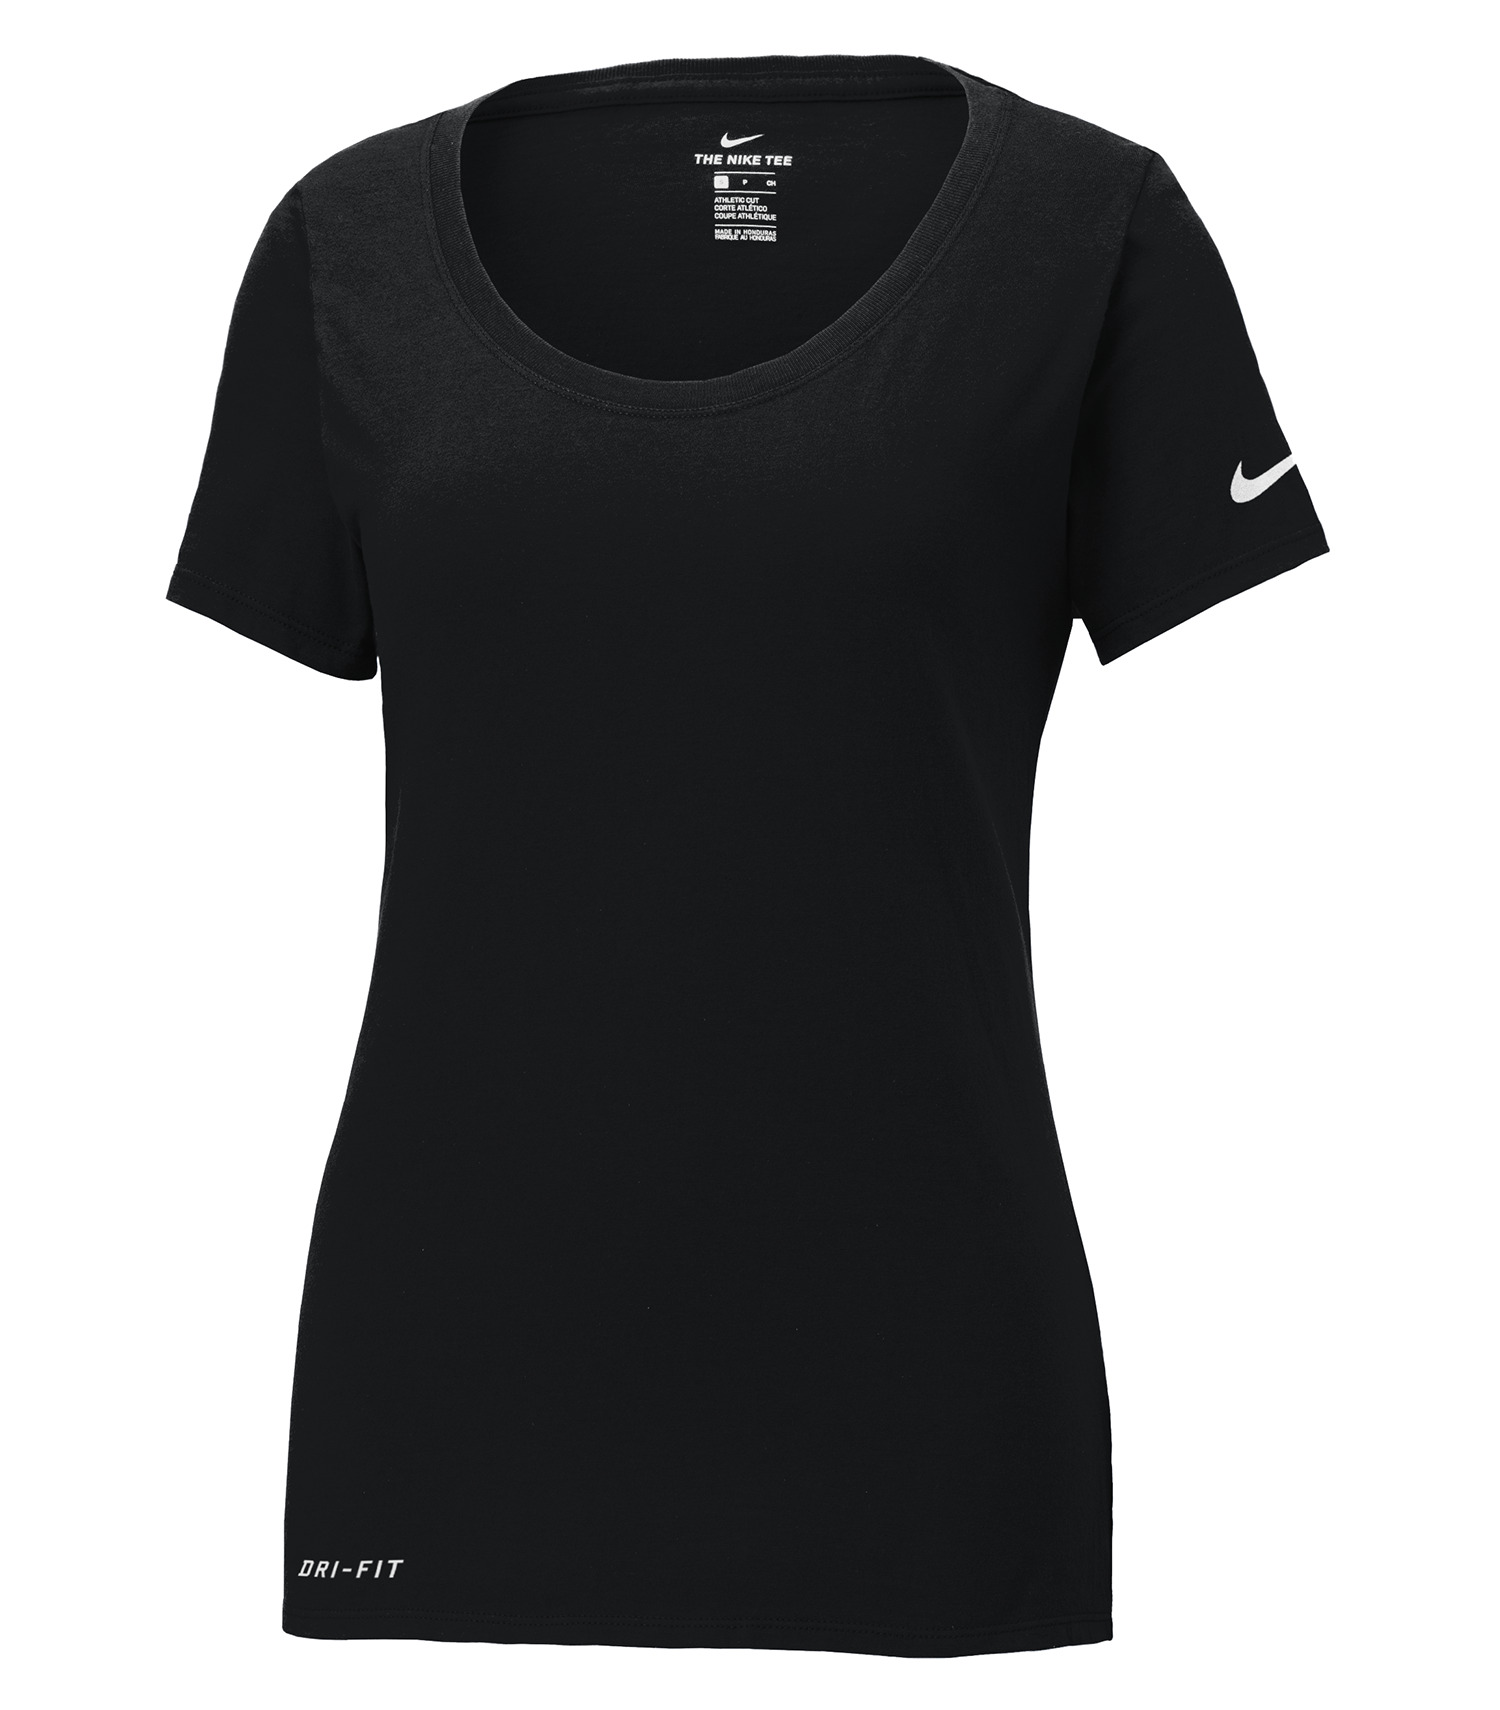 Picture of Nike Dri-Fit Cotton/Poly Scoop Neck Ladies' Tee